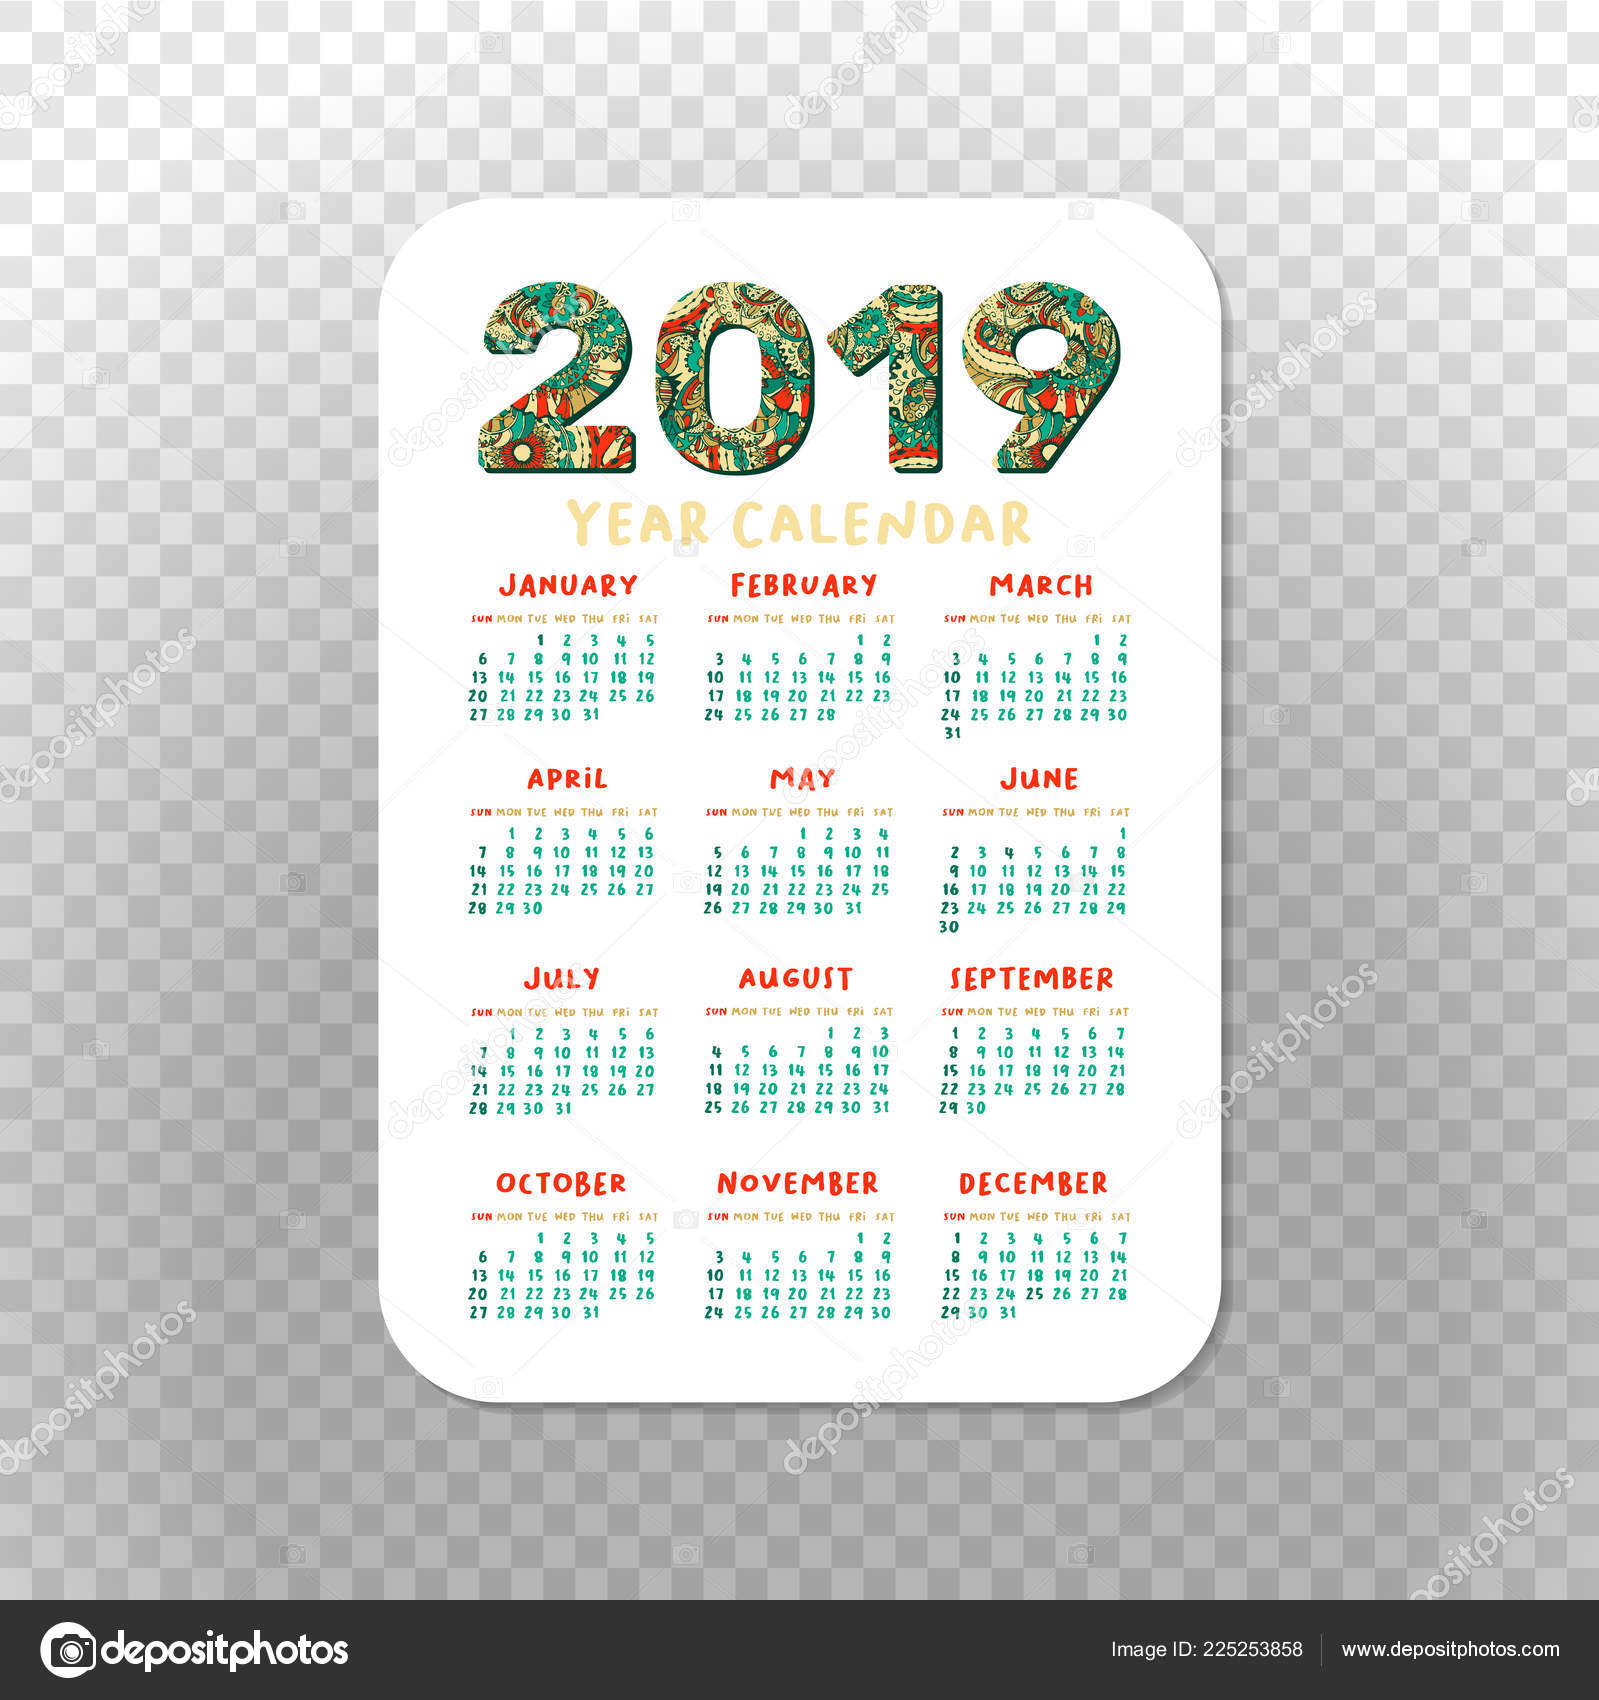 photograph relating to Printable Pocket Calendars identified as 2019 Pocket Calendar Easy Grid Vector Vertical Orientation